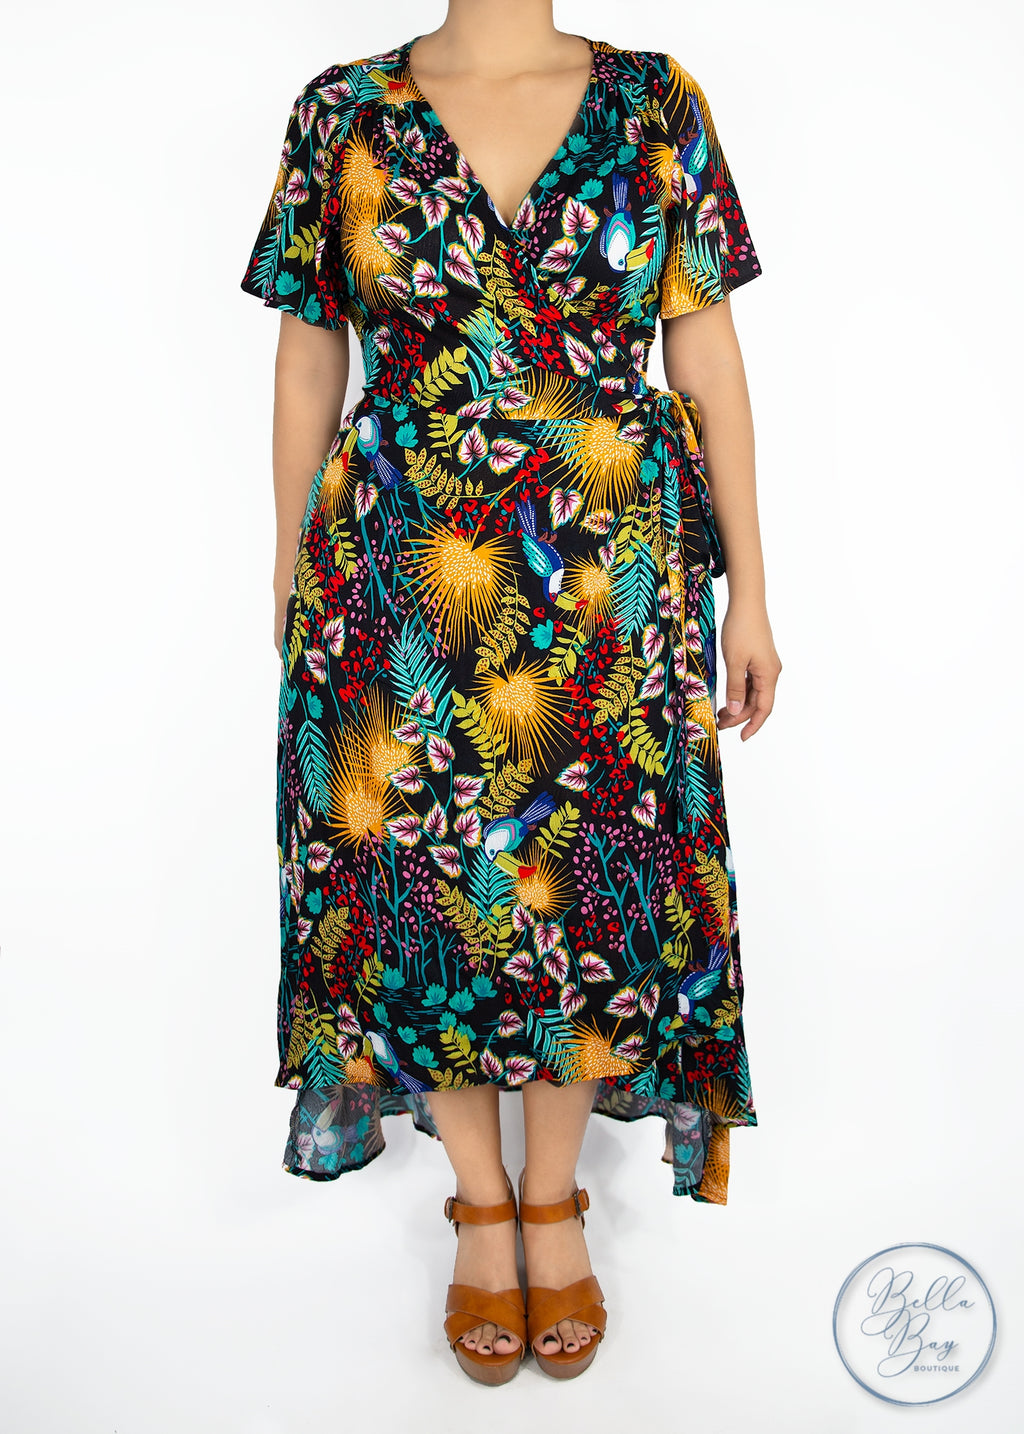 Paisley Raye Primrose Wrap Dress - Tropical (1X) - Paisley Raye with Bella Bay Boutique, shop now at  https://shopbellabay.com/ or locally in Newport Oregon